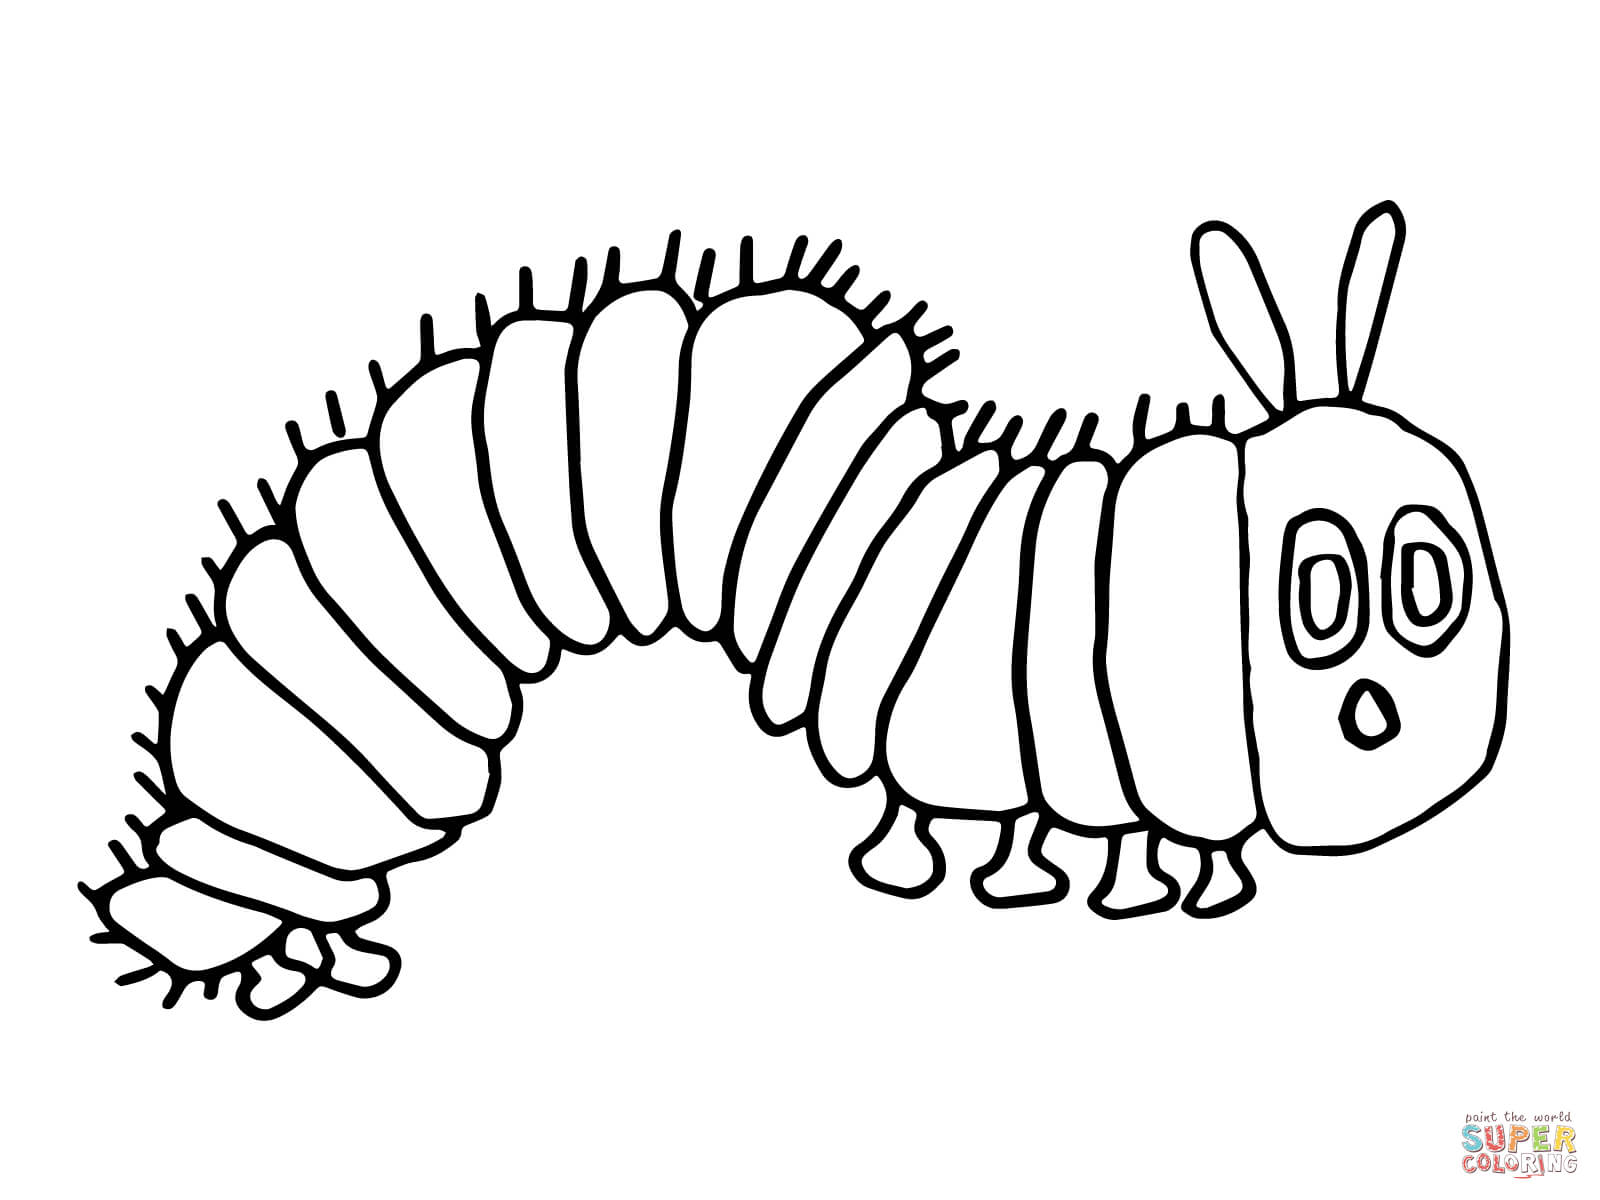 1600x1200 The Very Hungry Caterpillar Coloring Pages, Get This The Very